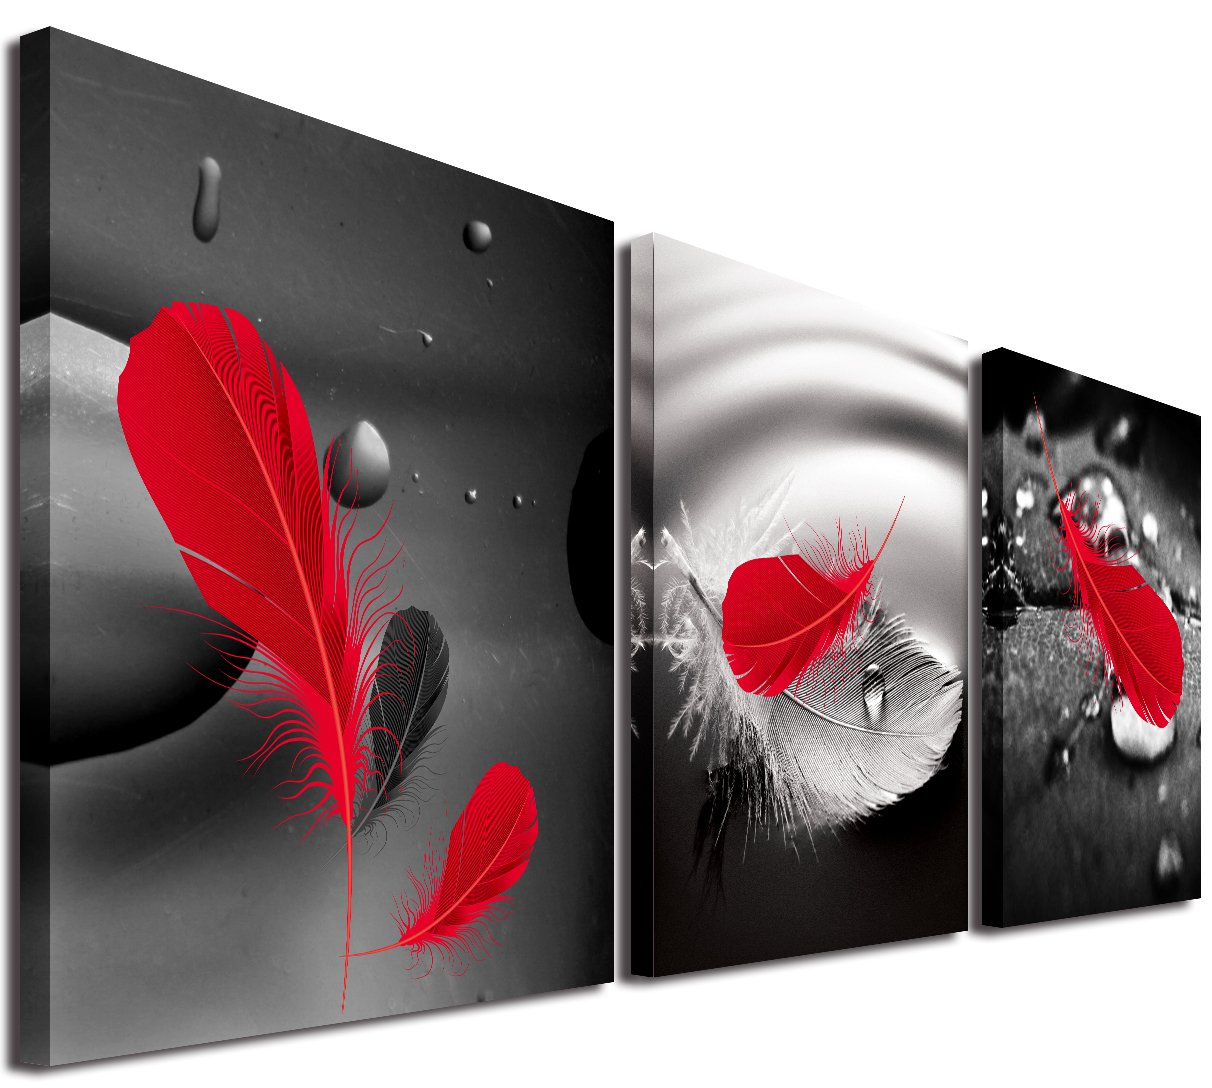 Mon Art 30cm x 30cm x 3 Pics Wall Art Painting Abstract Art in Black Background Red Feather on Canvas Wall Decor Home Decor Decoration Bathroom Bedroom Living Room Stretched and Framed Ready to Hang